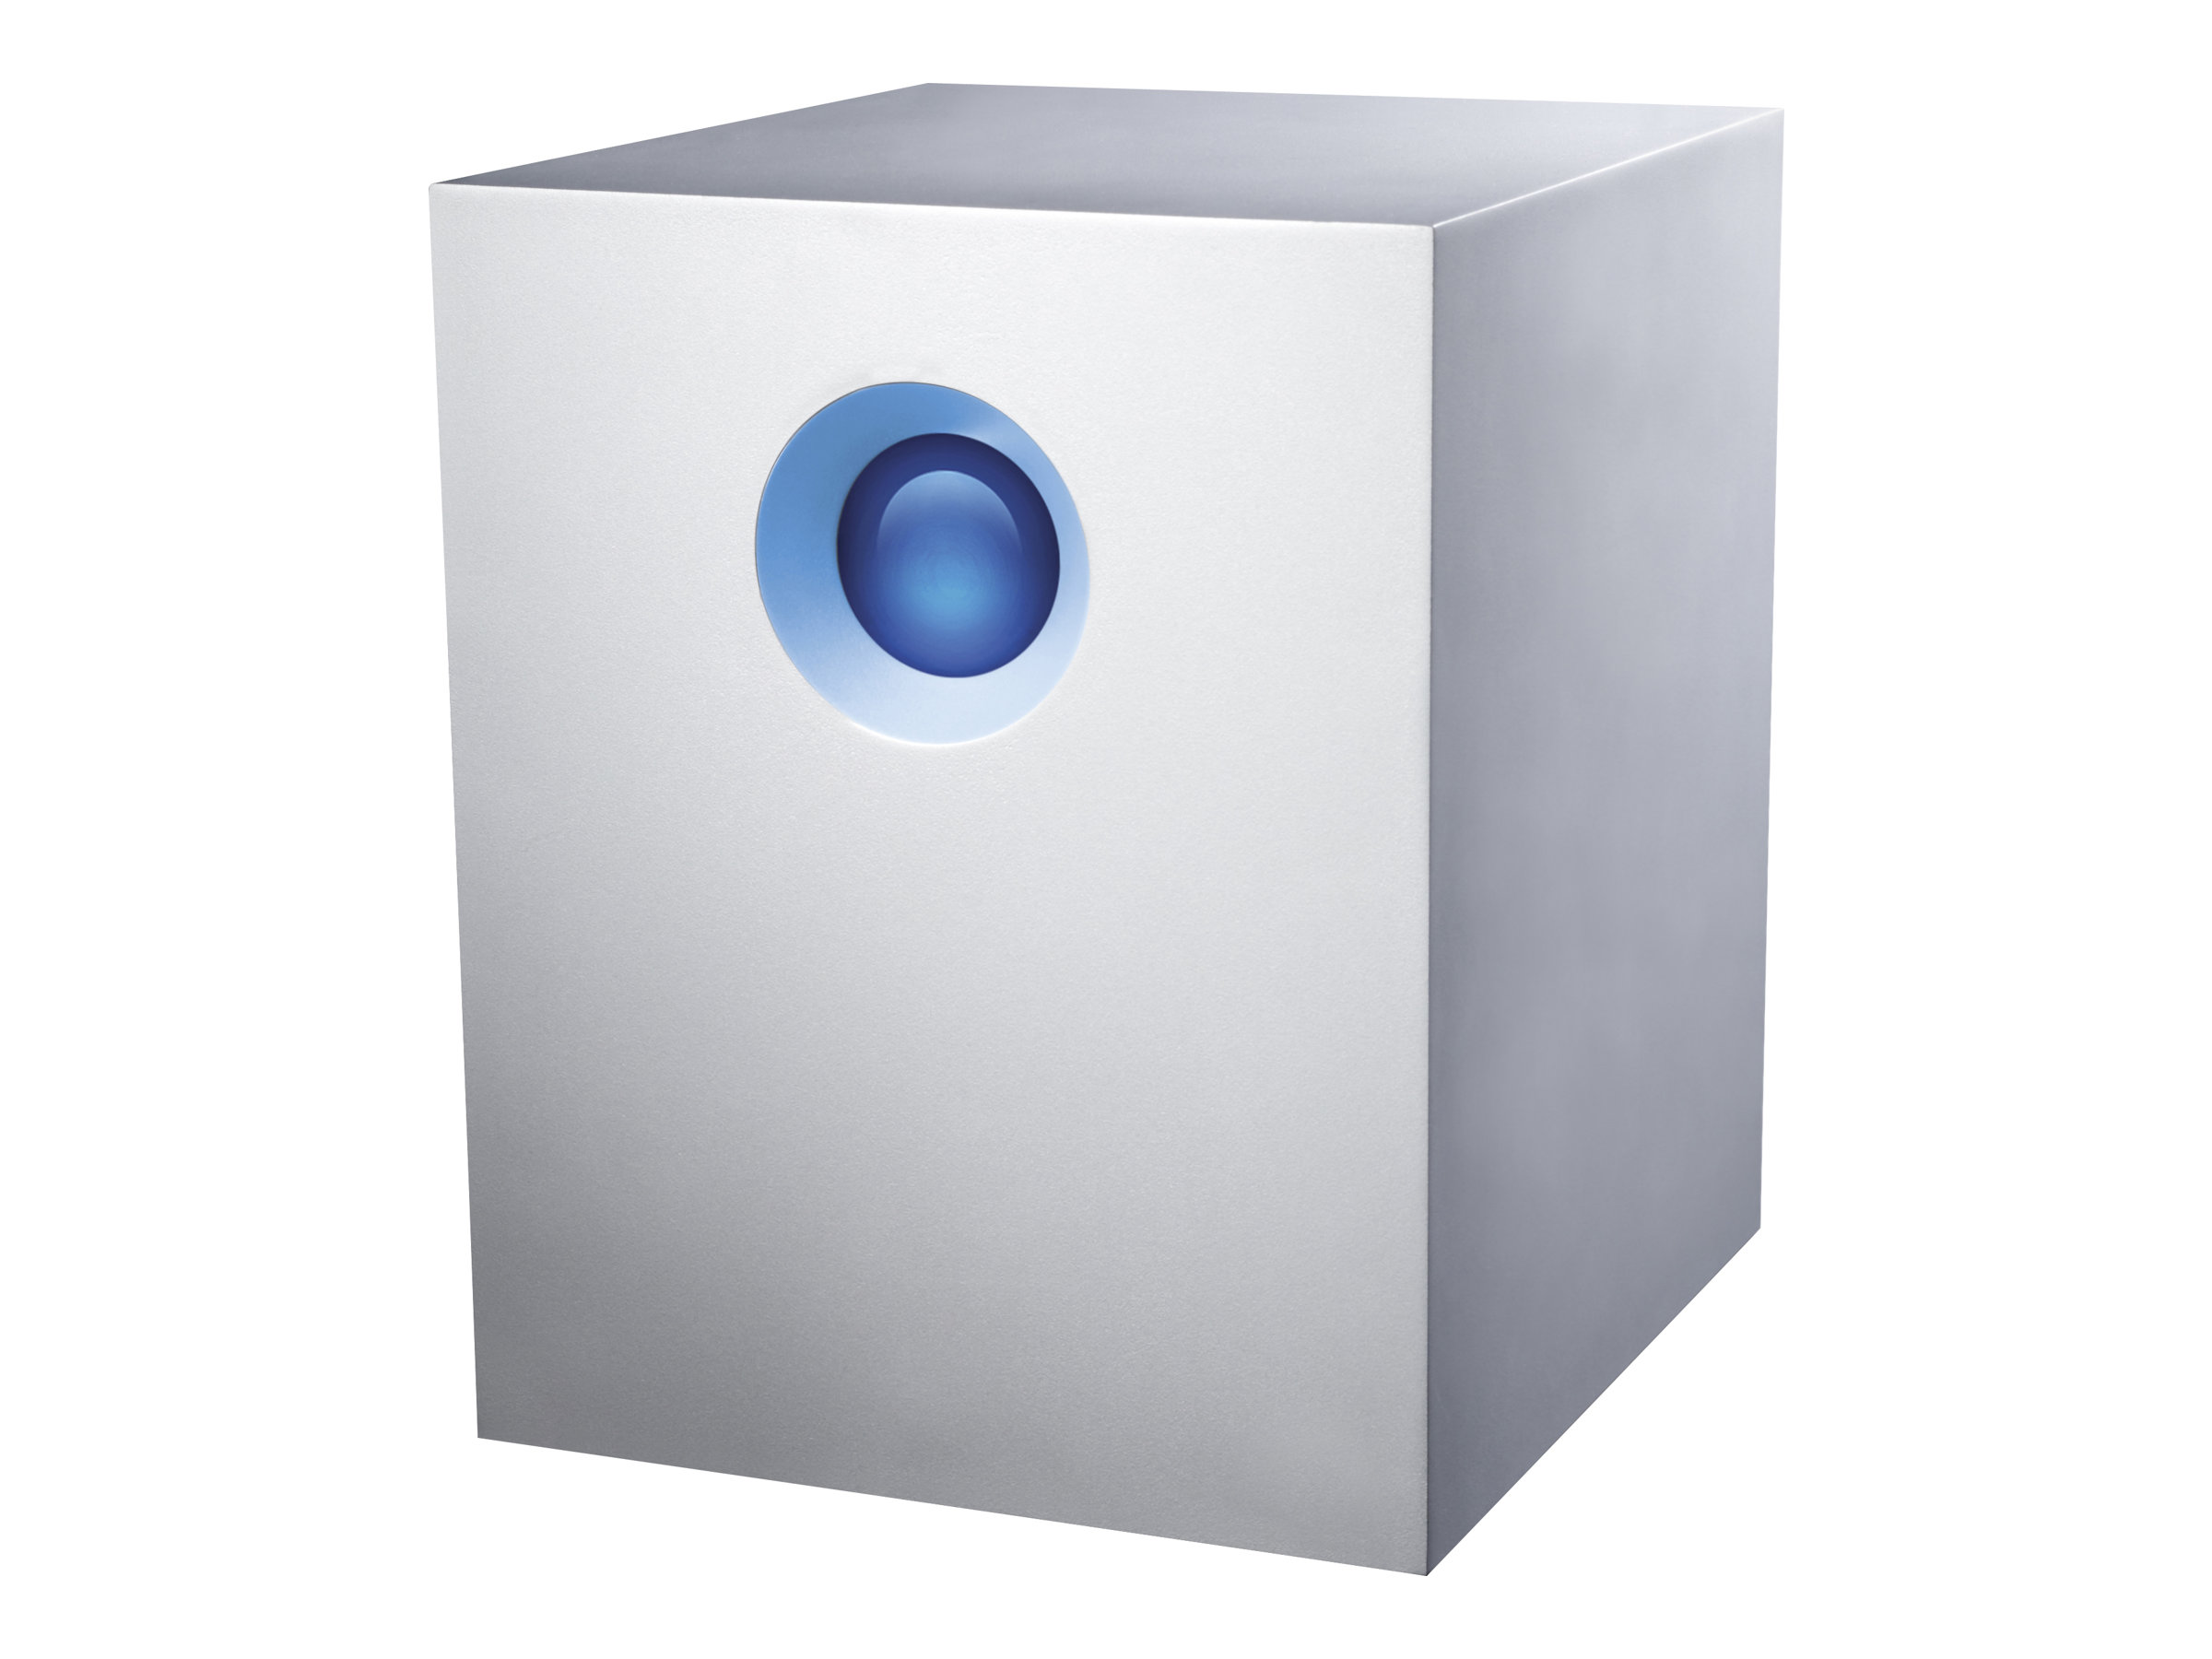 LaCie 5Big Thunderbolt 2 10TB External RAID Hard Drive (STFC10000400) by LaCie